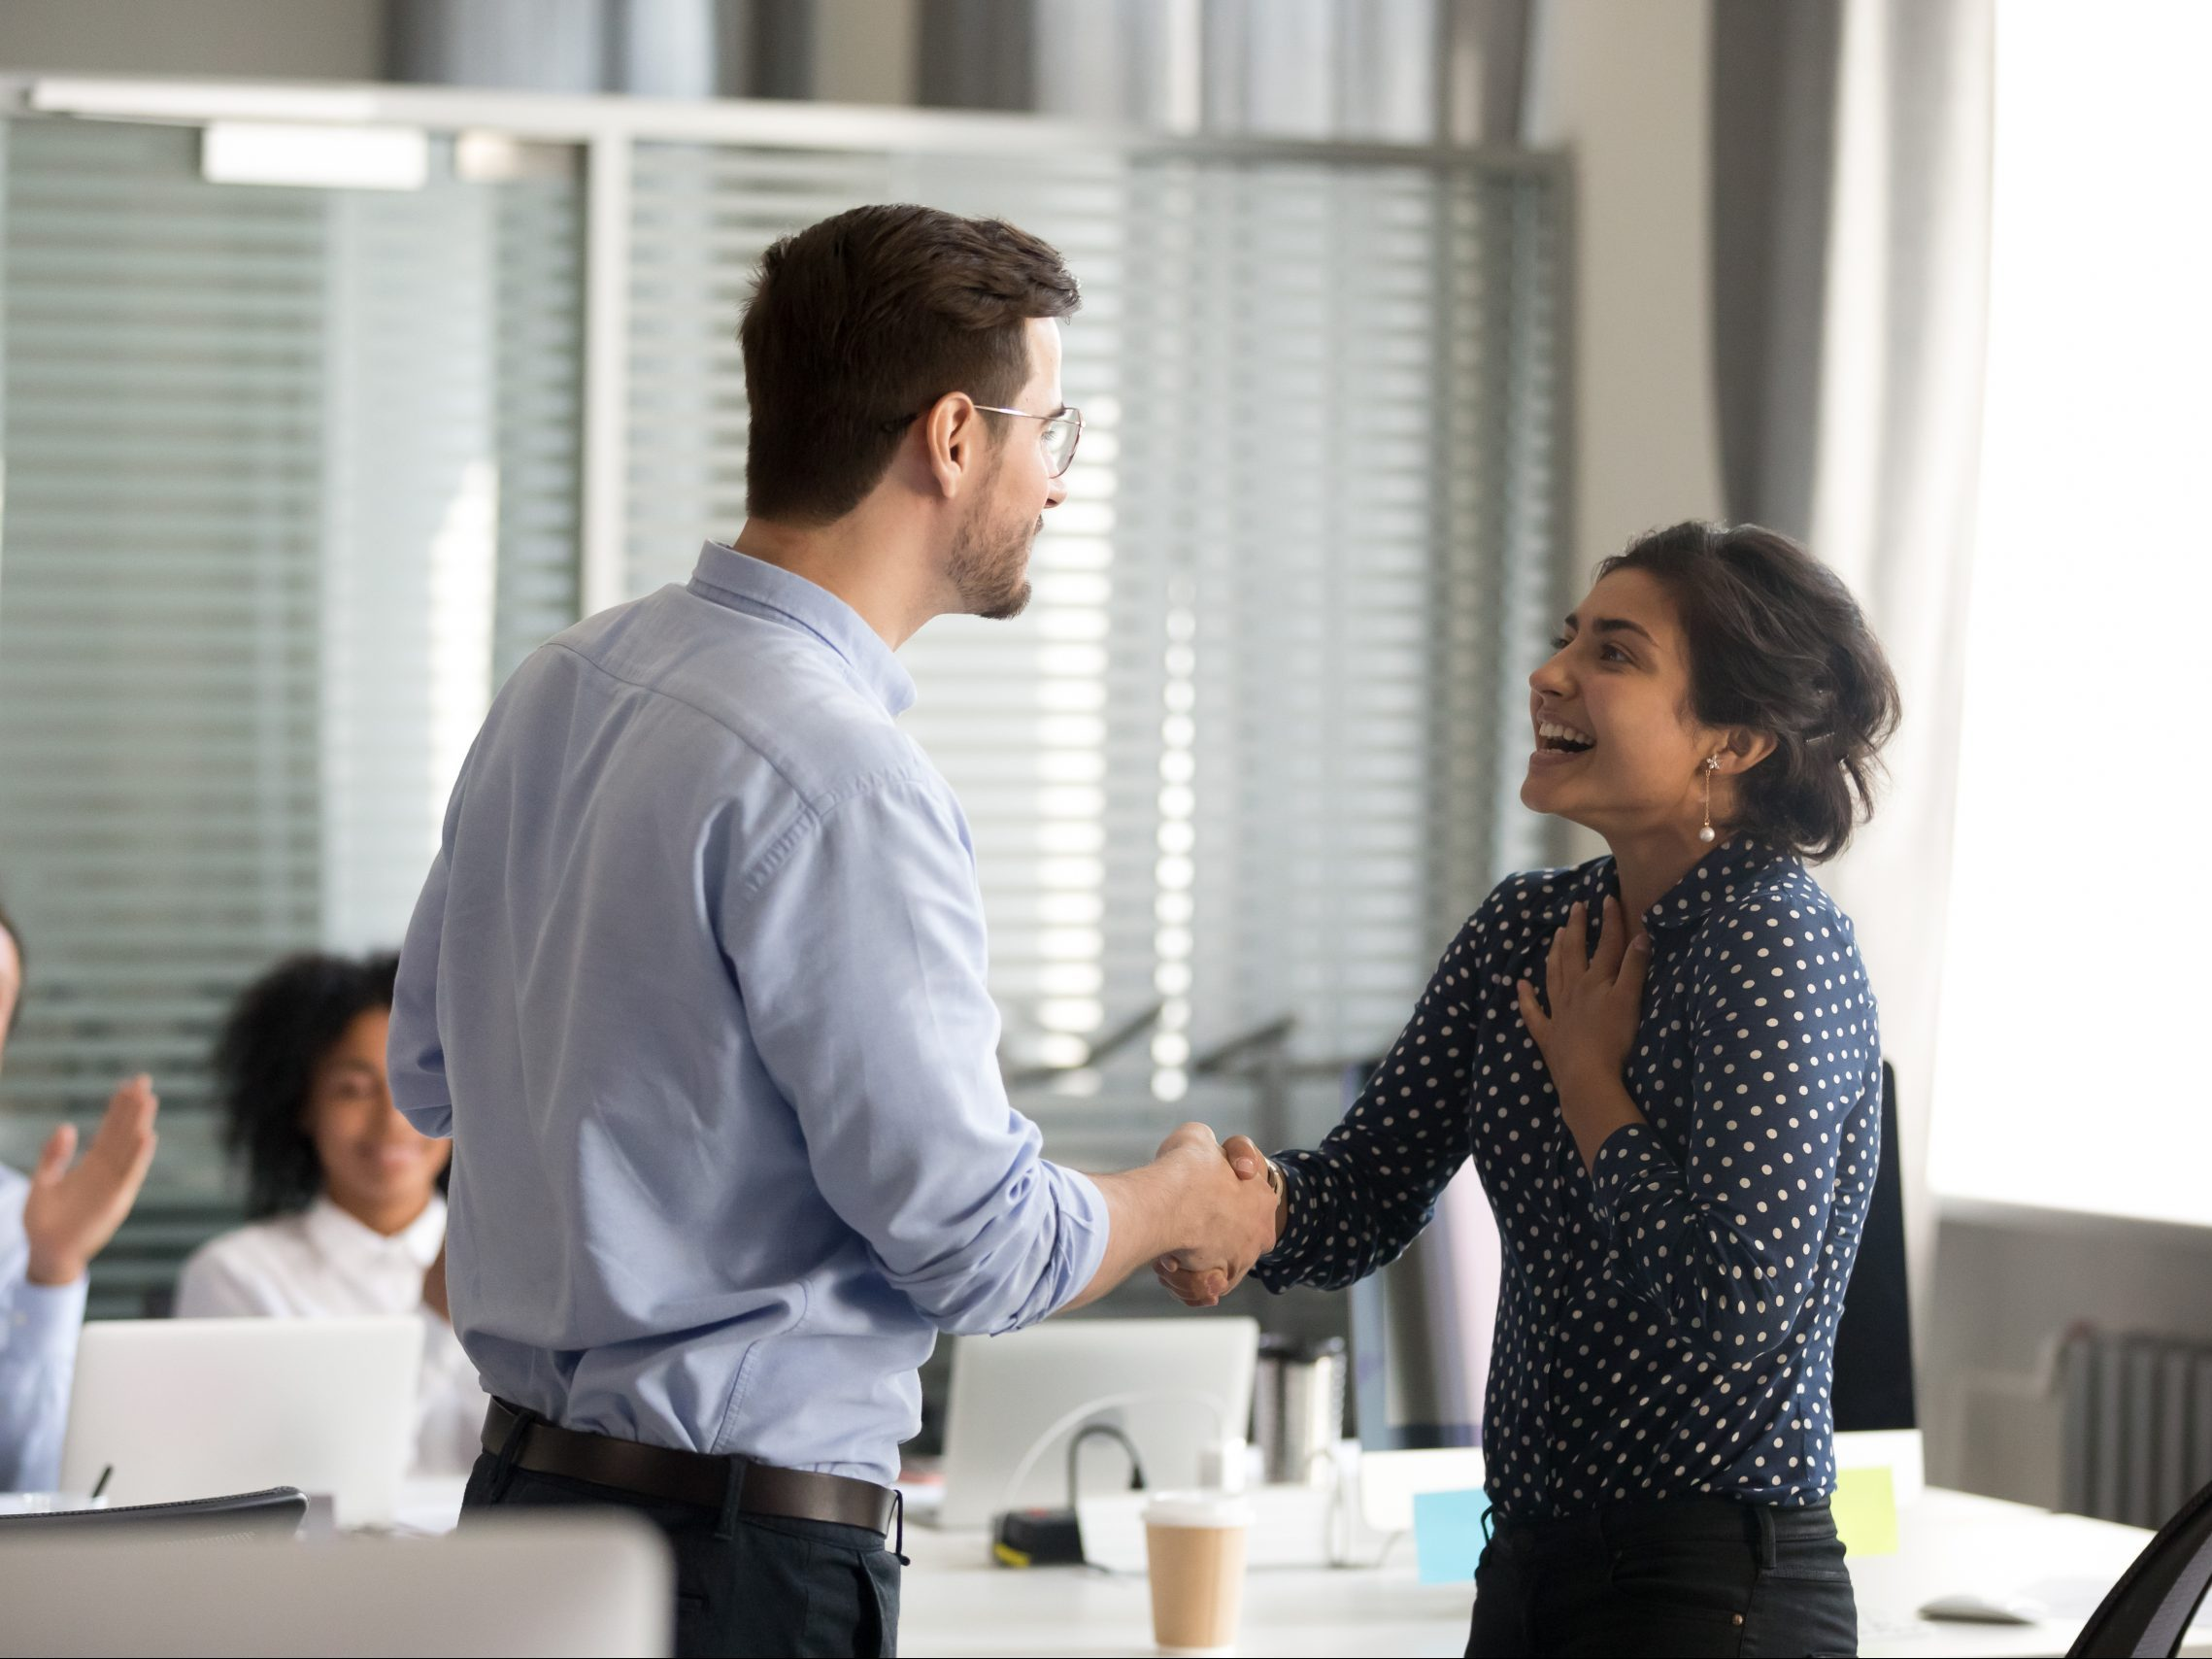 Team,Leader,Motivating,Handshaking,Female,Indian,Excited,Employee,,Congratulate,With